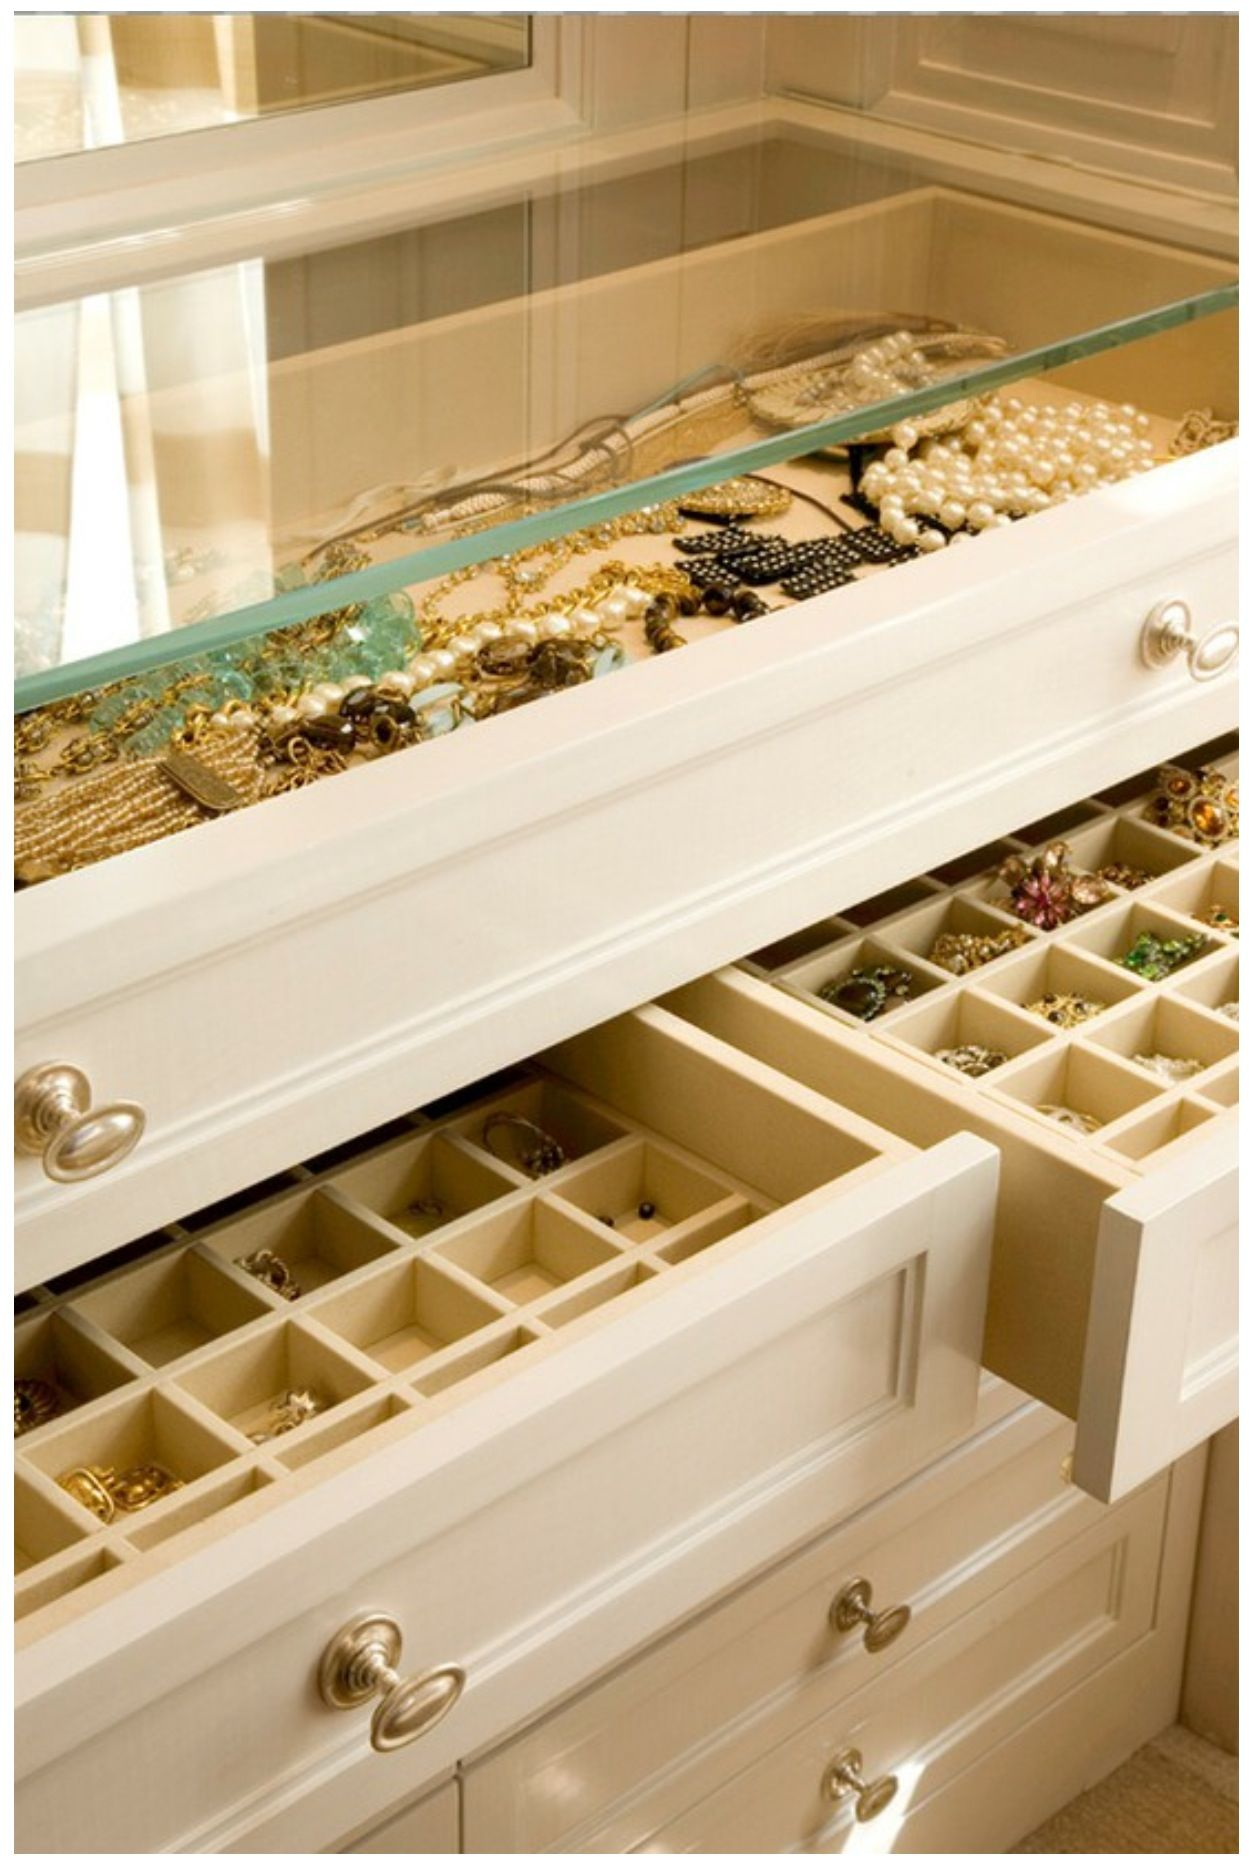 Jewelry storage - I NEED this